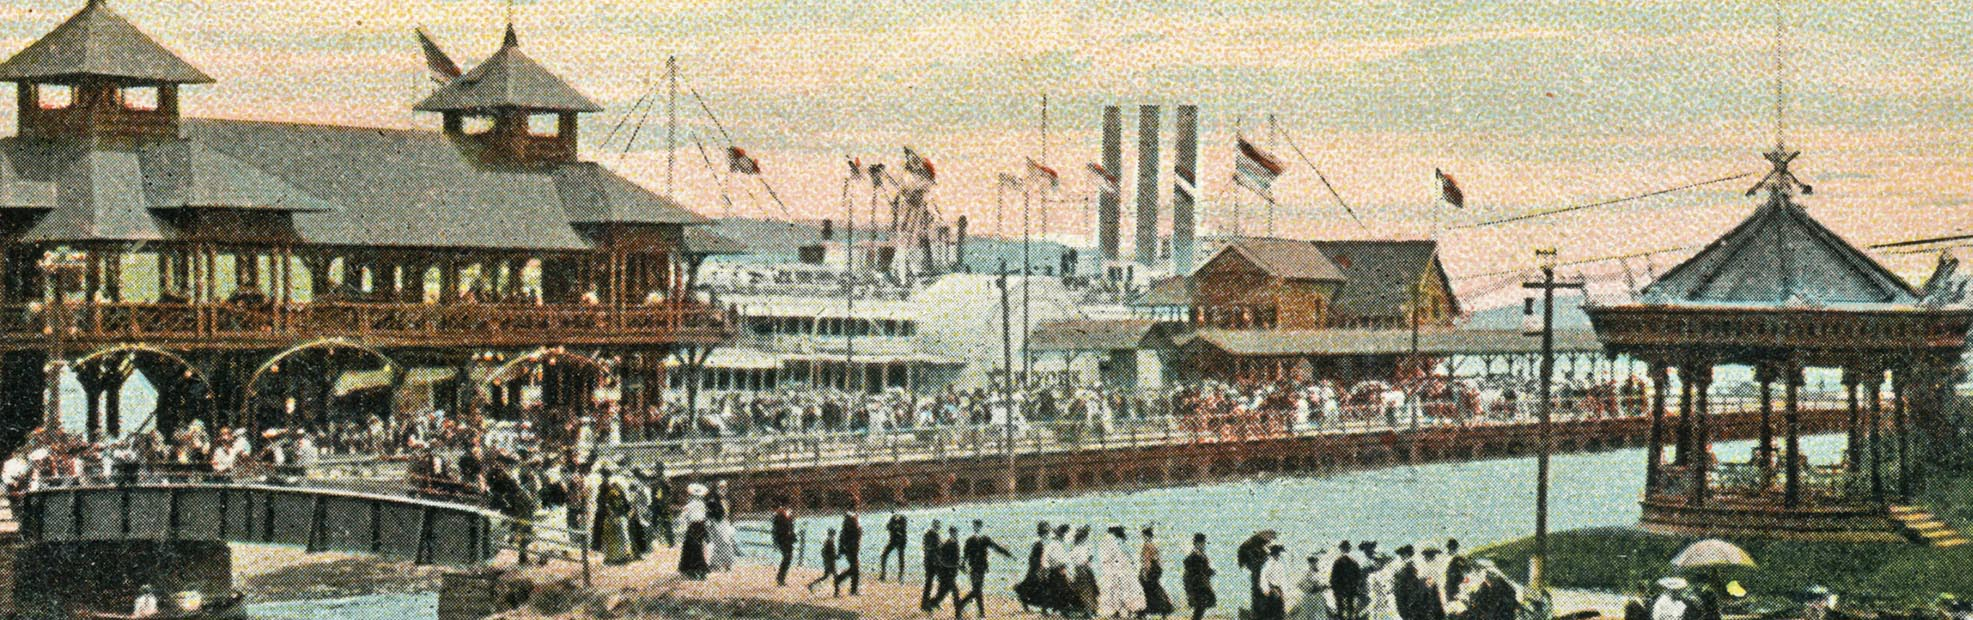 passengers disembark a steamship at Kingston Point Park c.1900